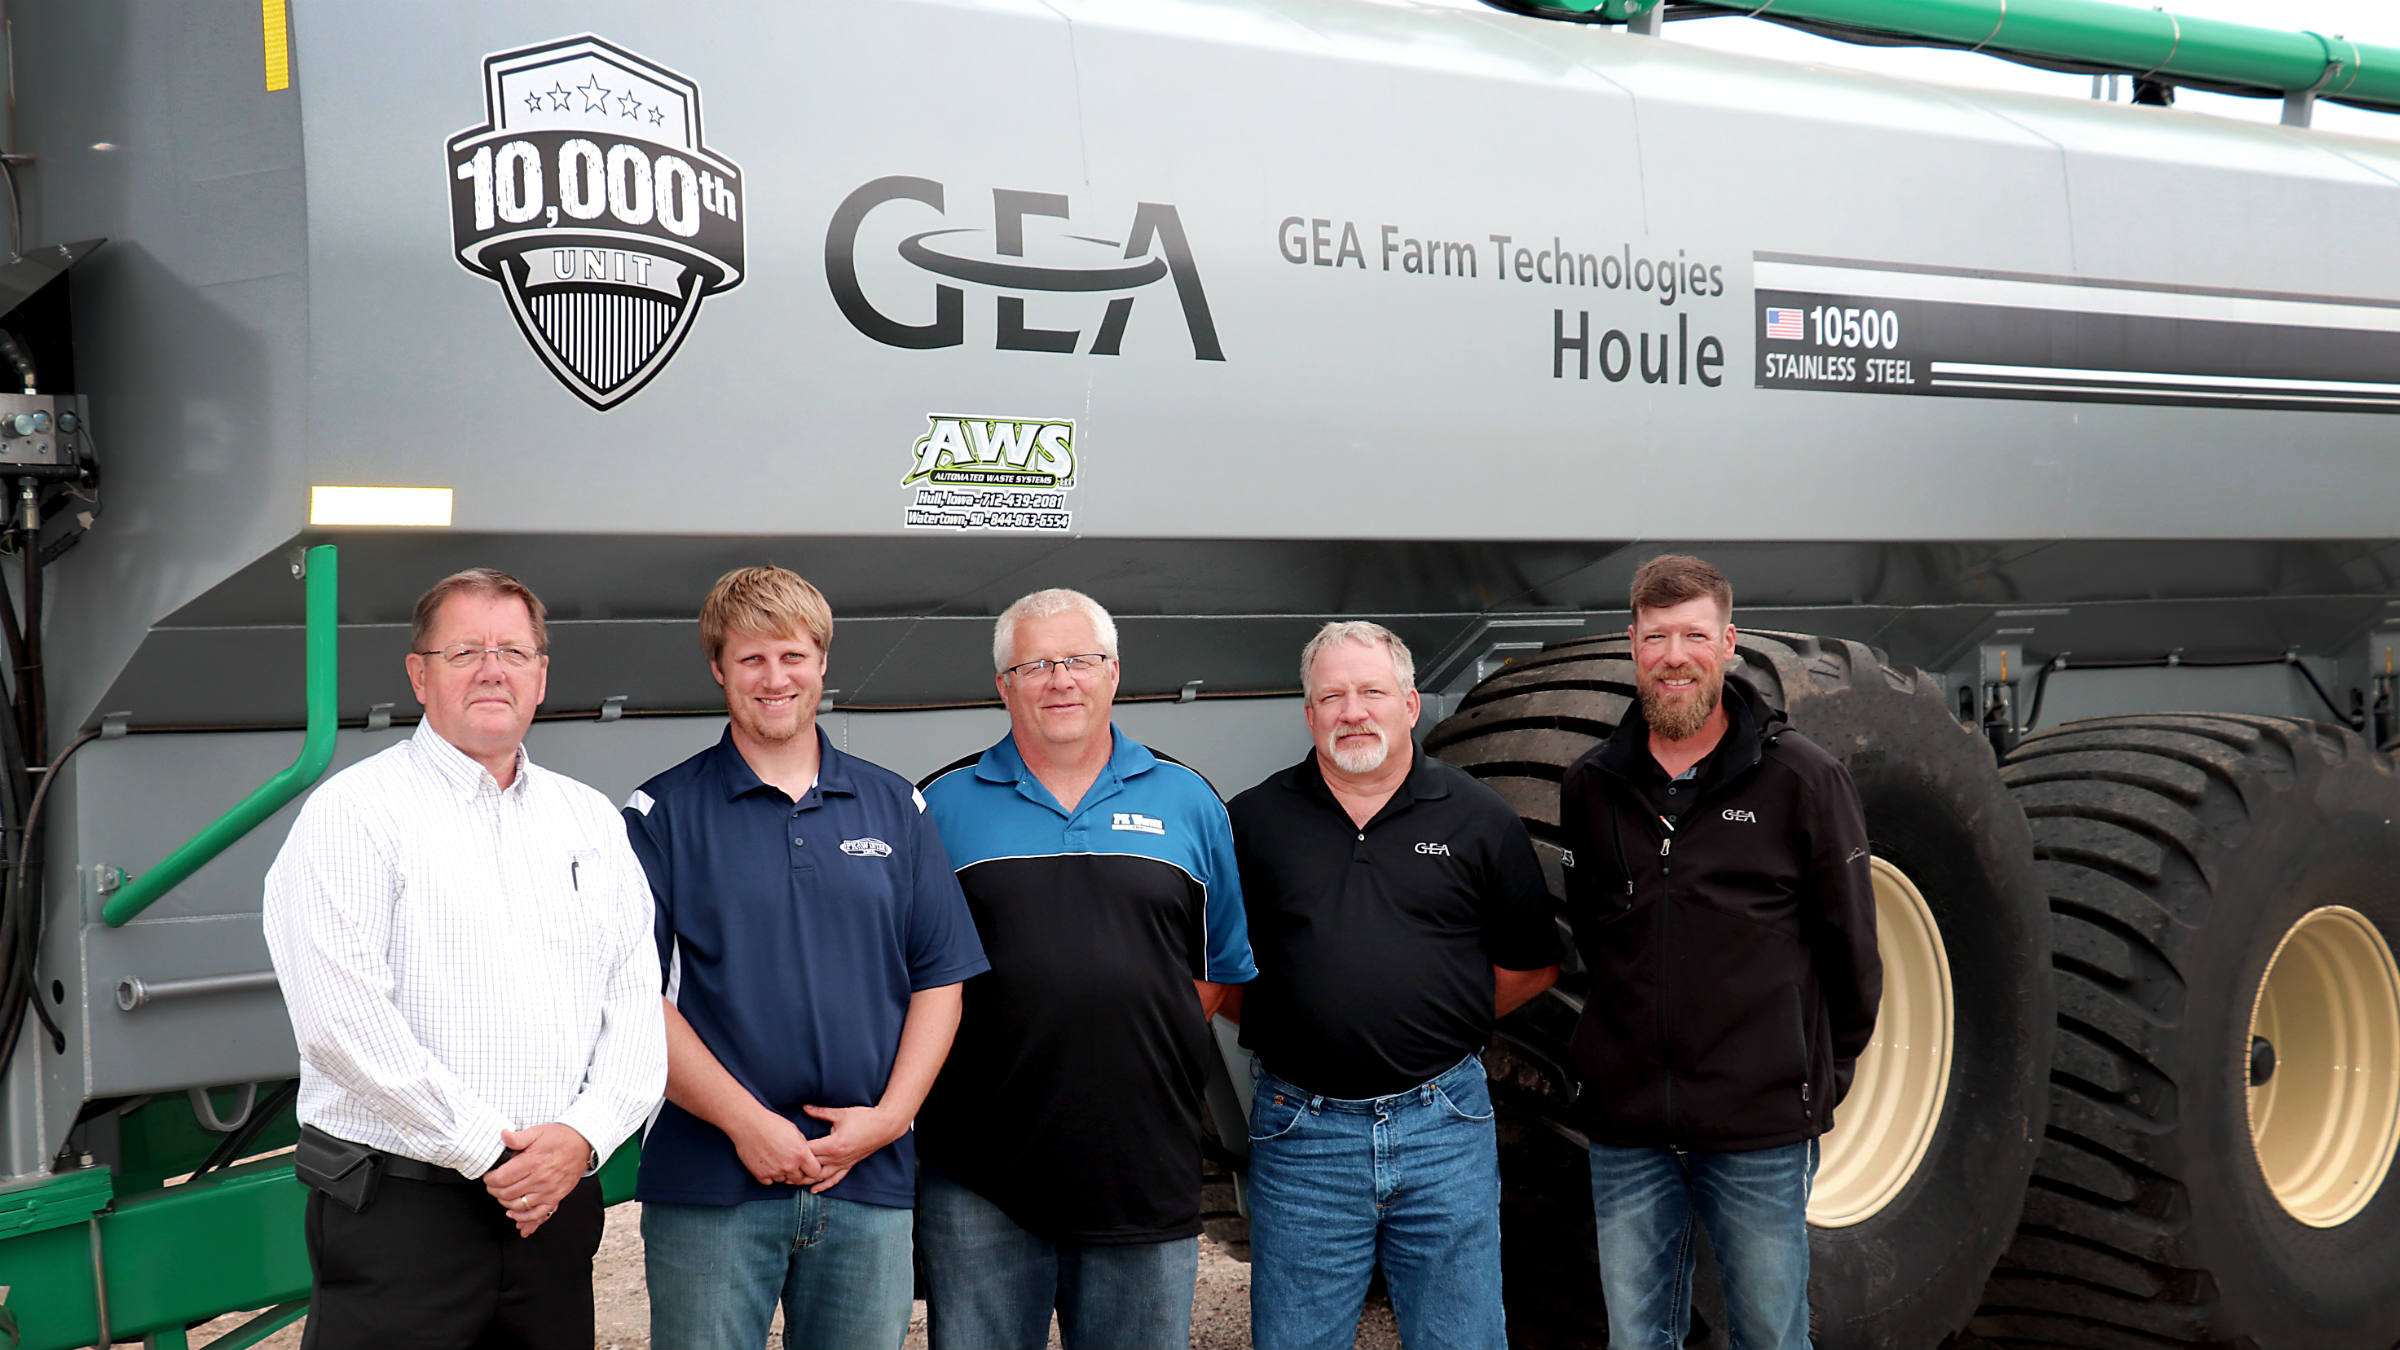 GEA`s 10,000th liquid manure spreader unit